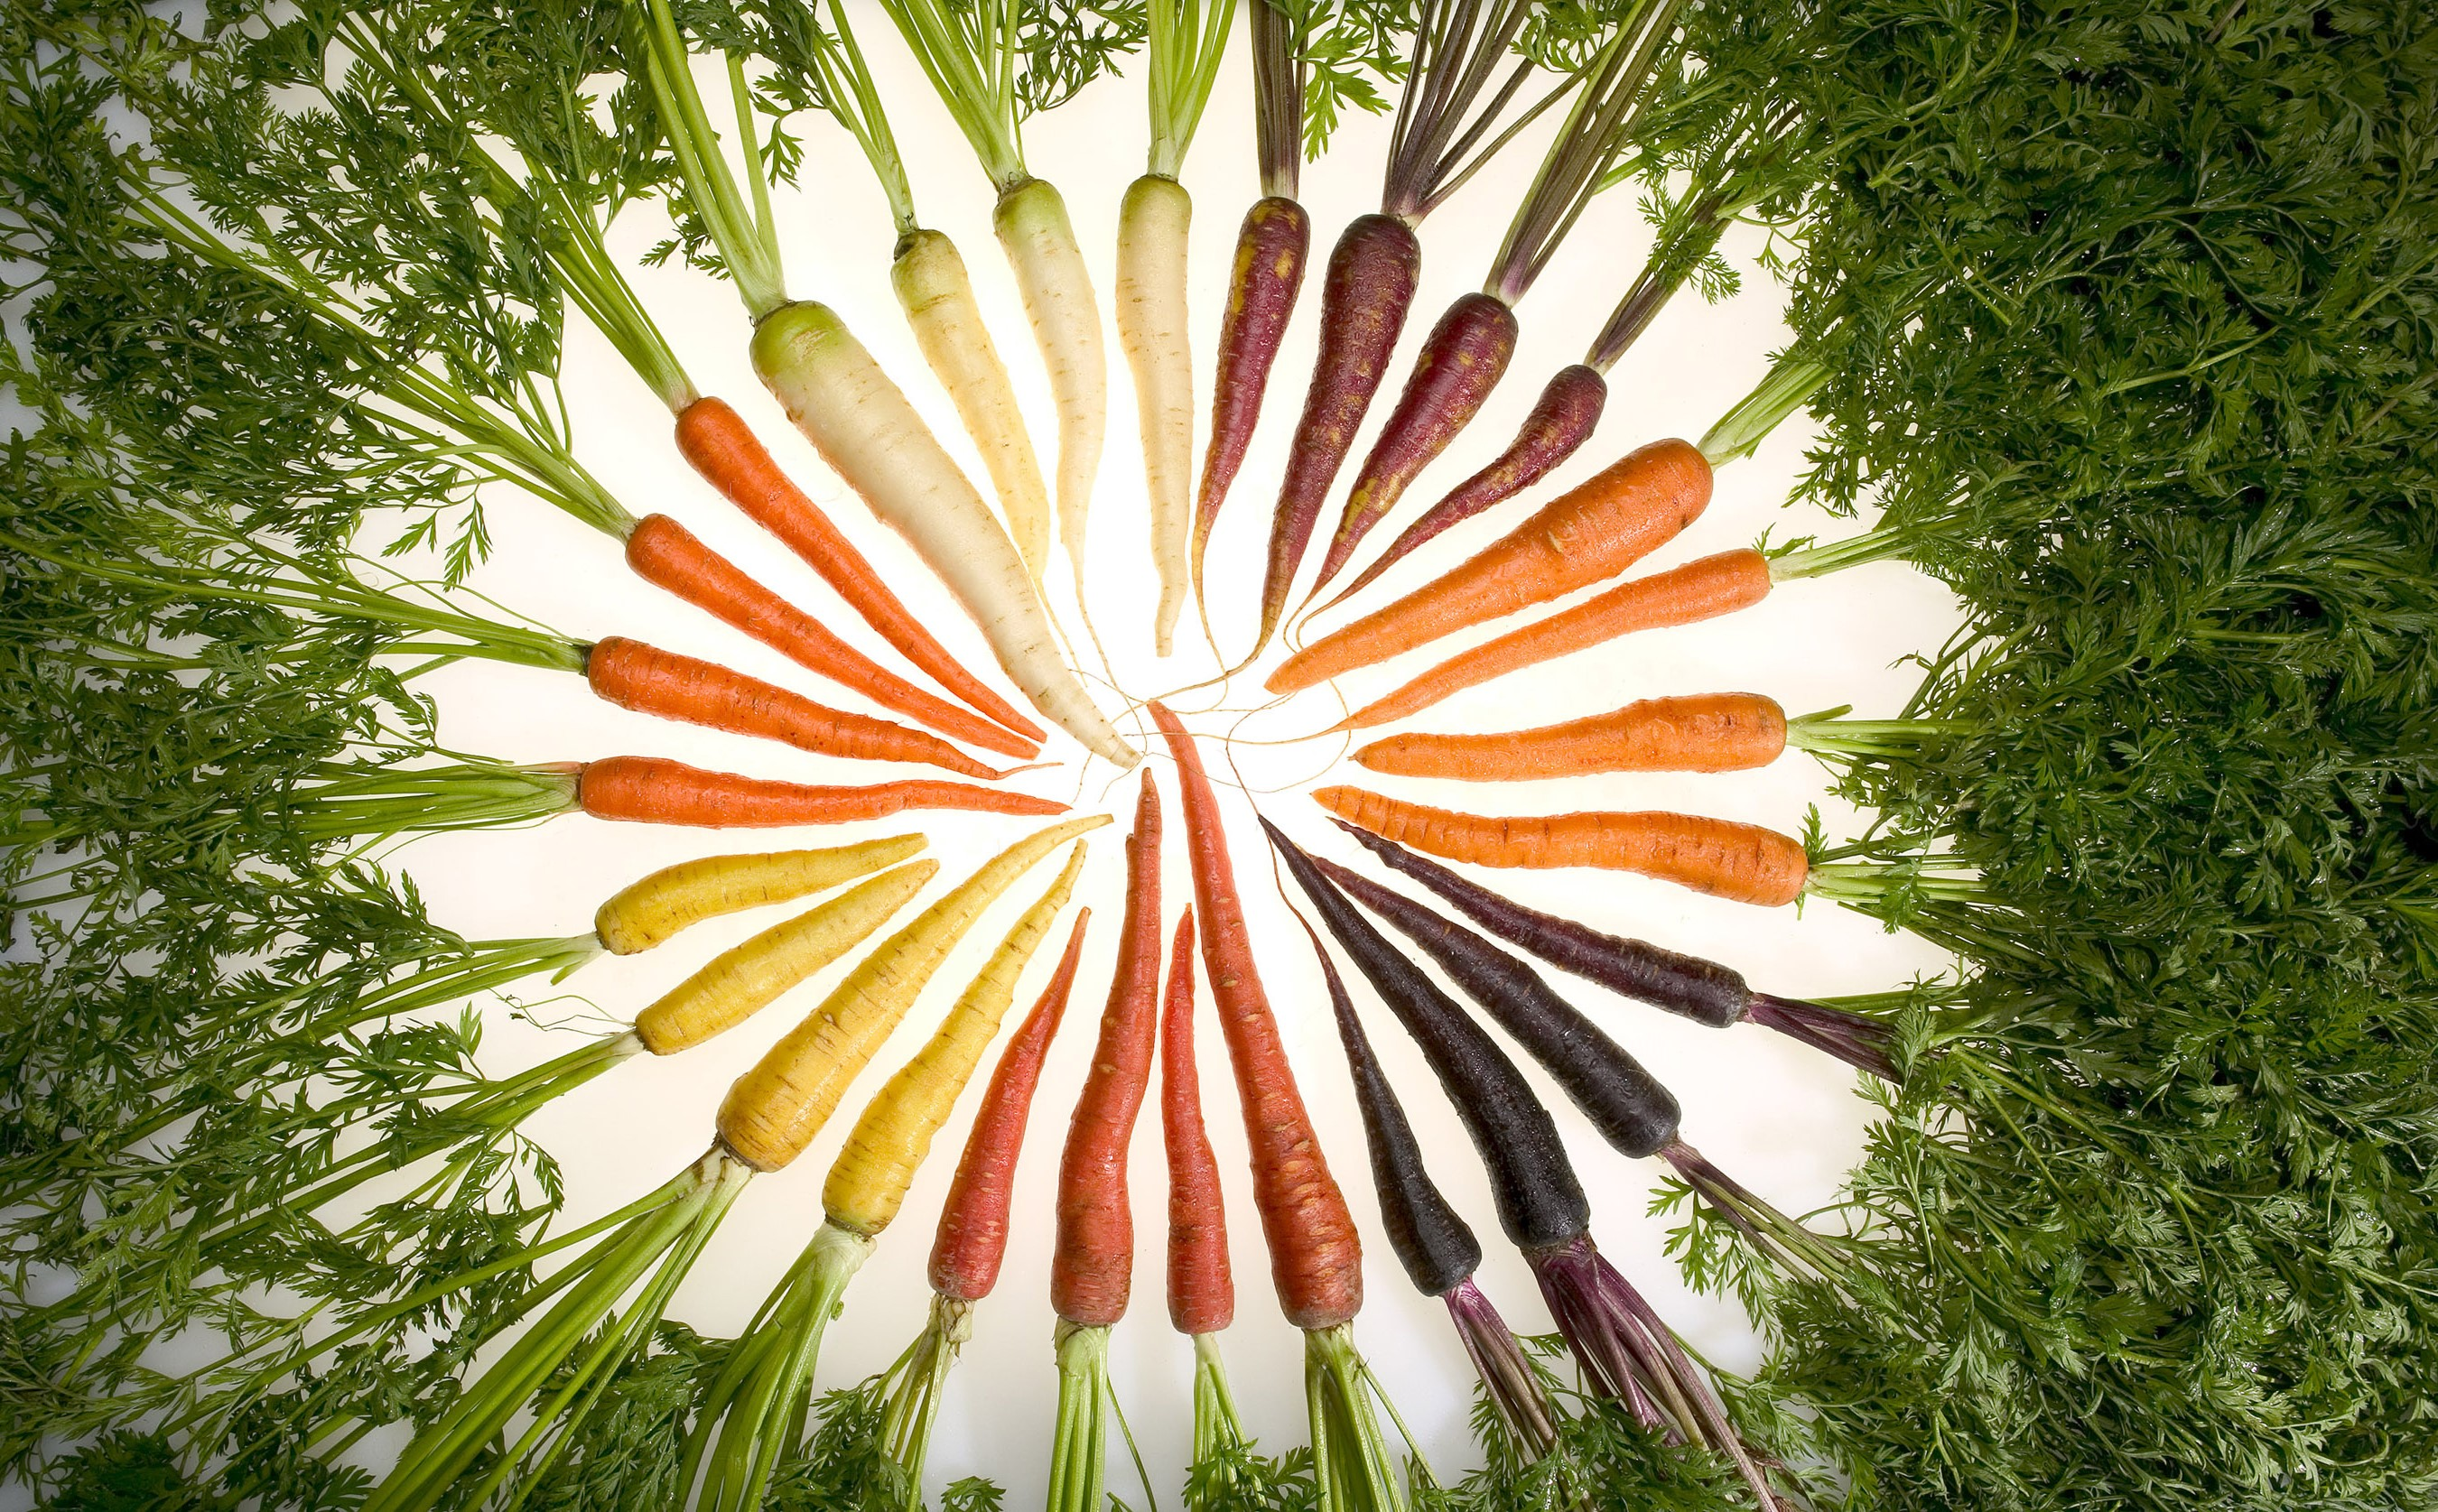 Carrot principle research paper what is a limiting factor in terms of photosynthesis